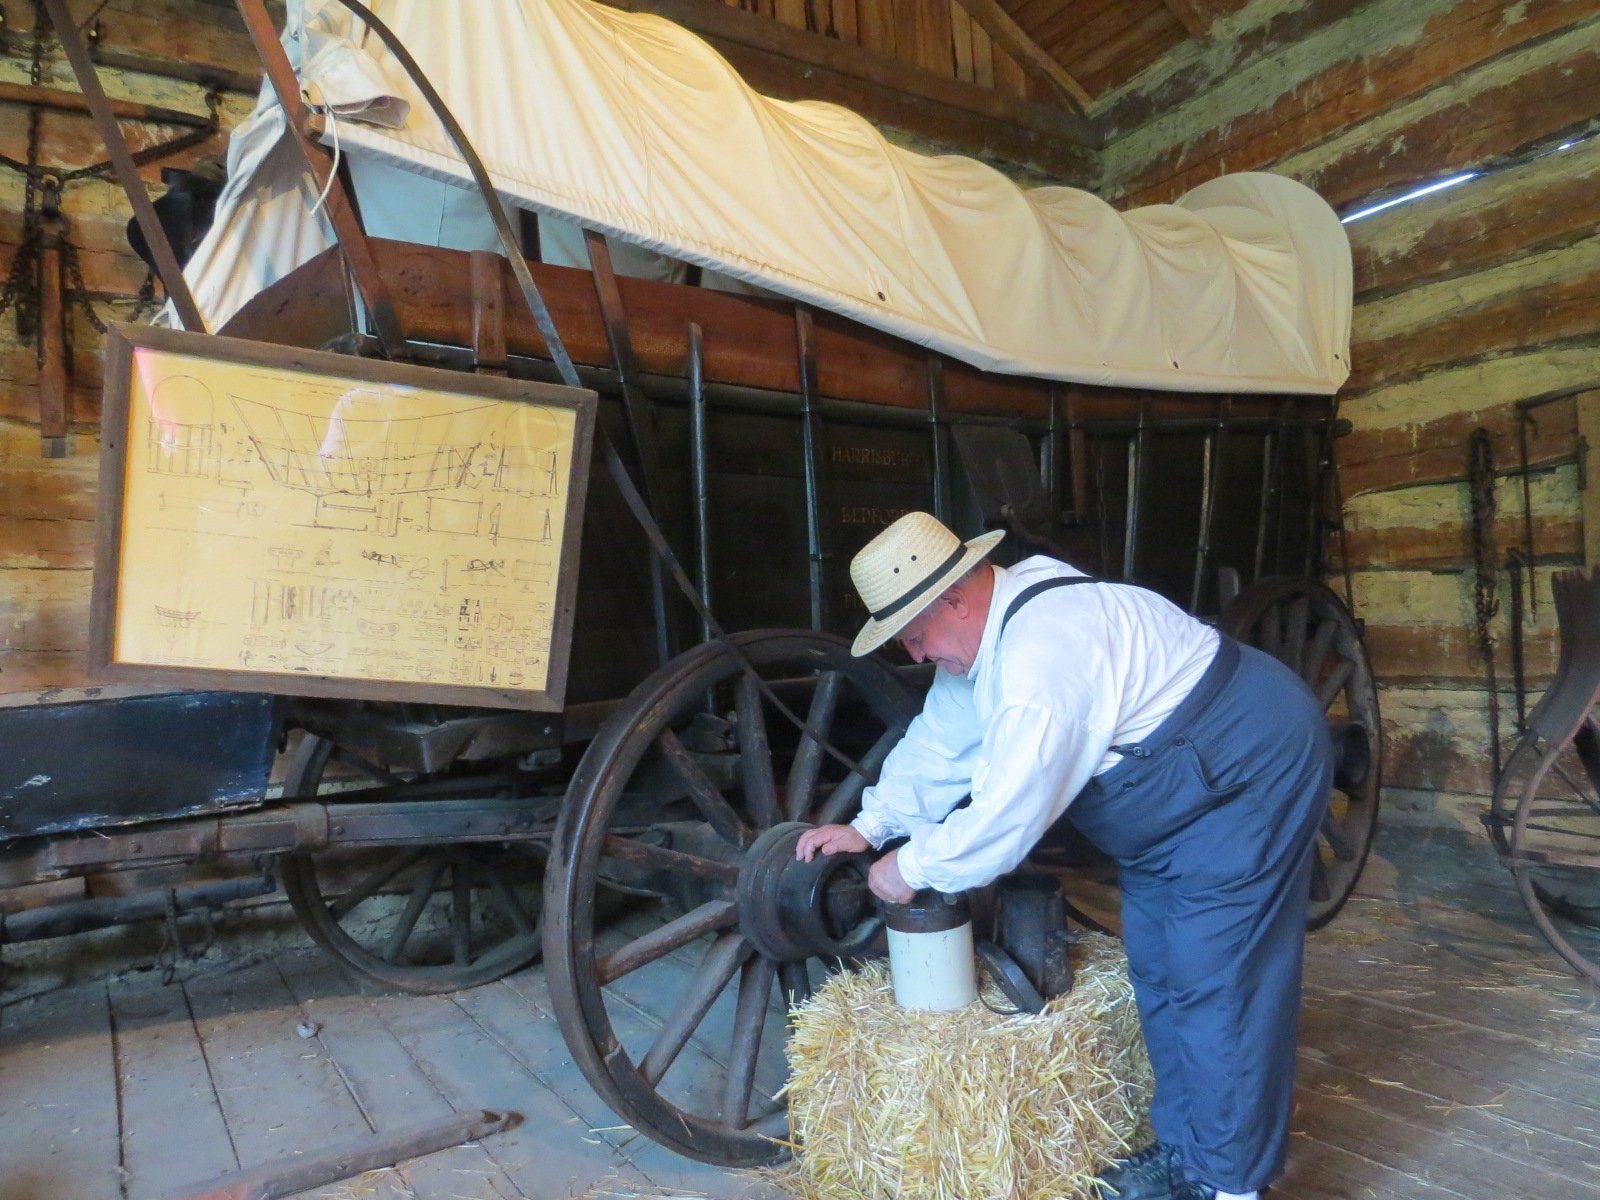 Up to 100 Conestoga Wagons could travel past Compass Inn in one day.